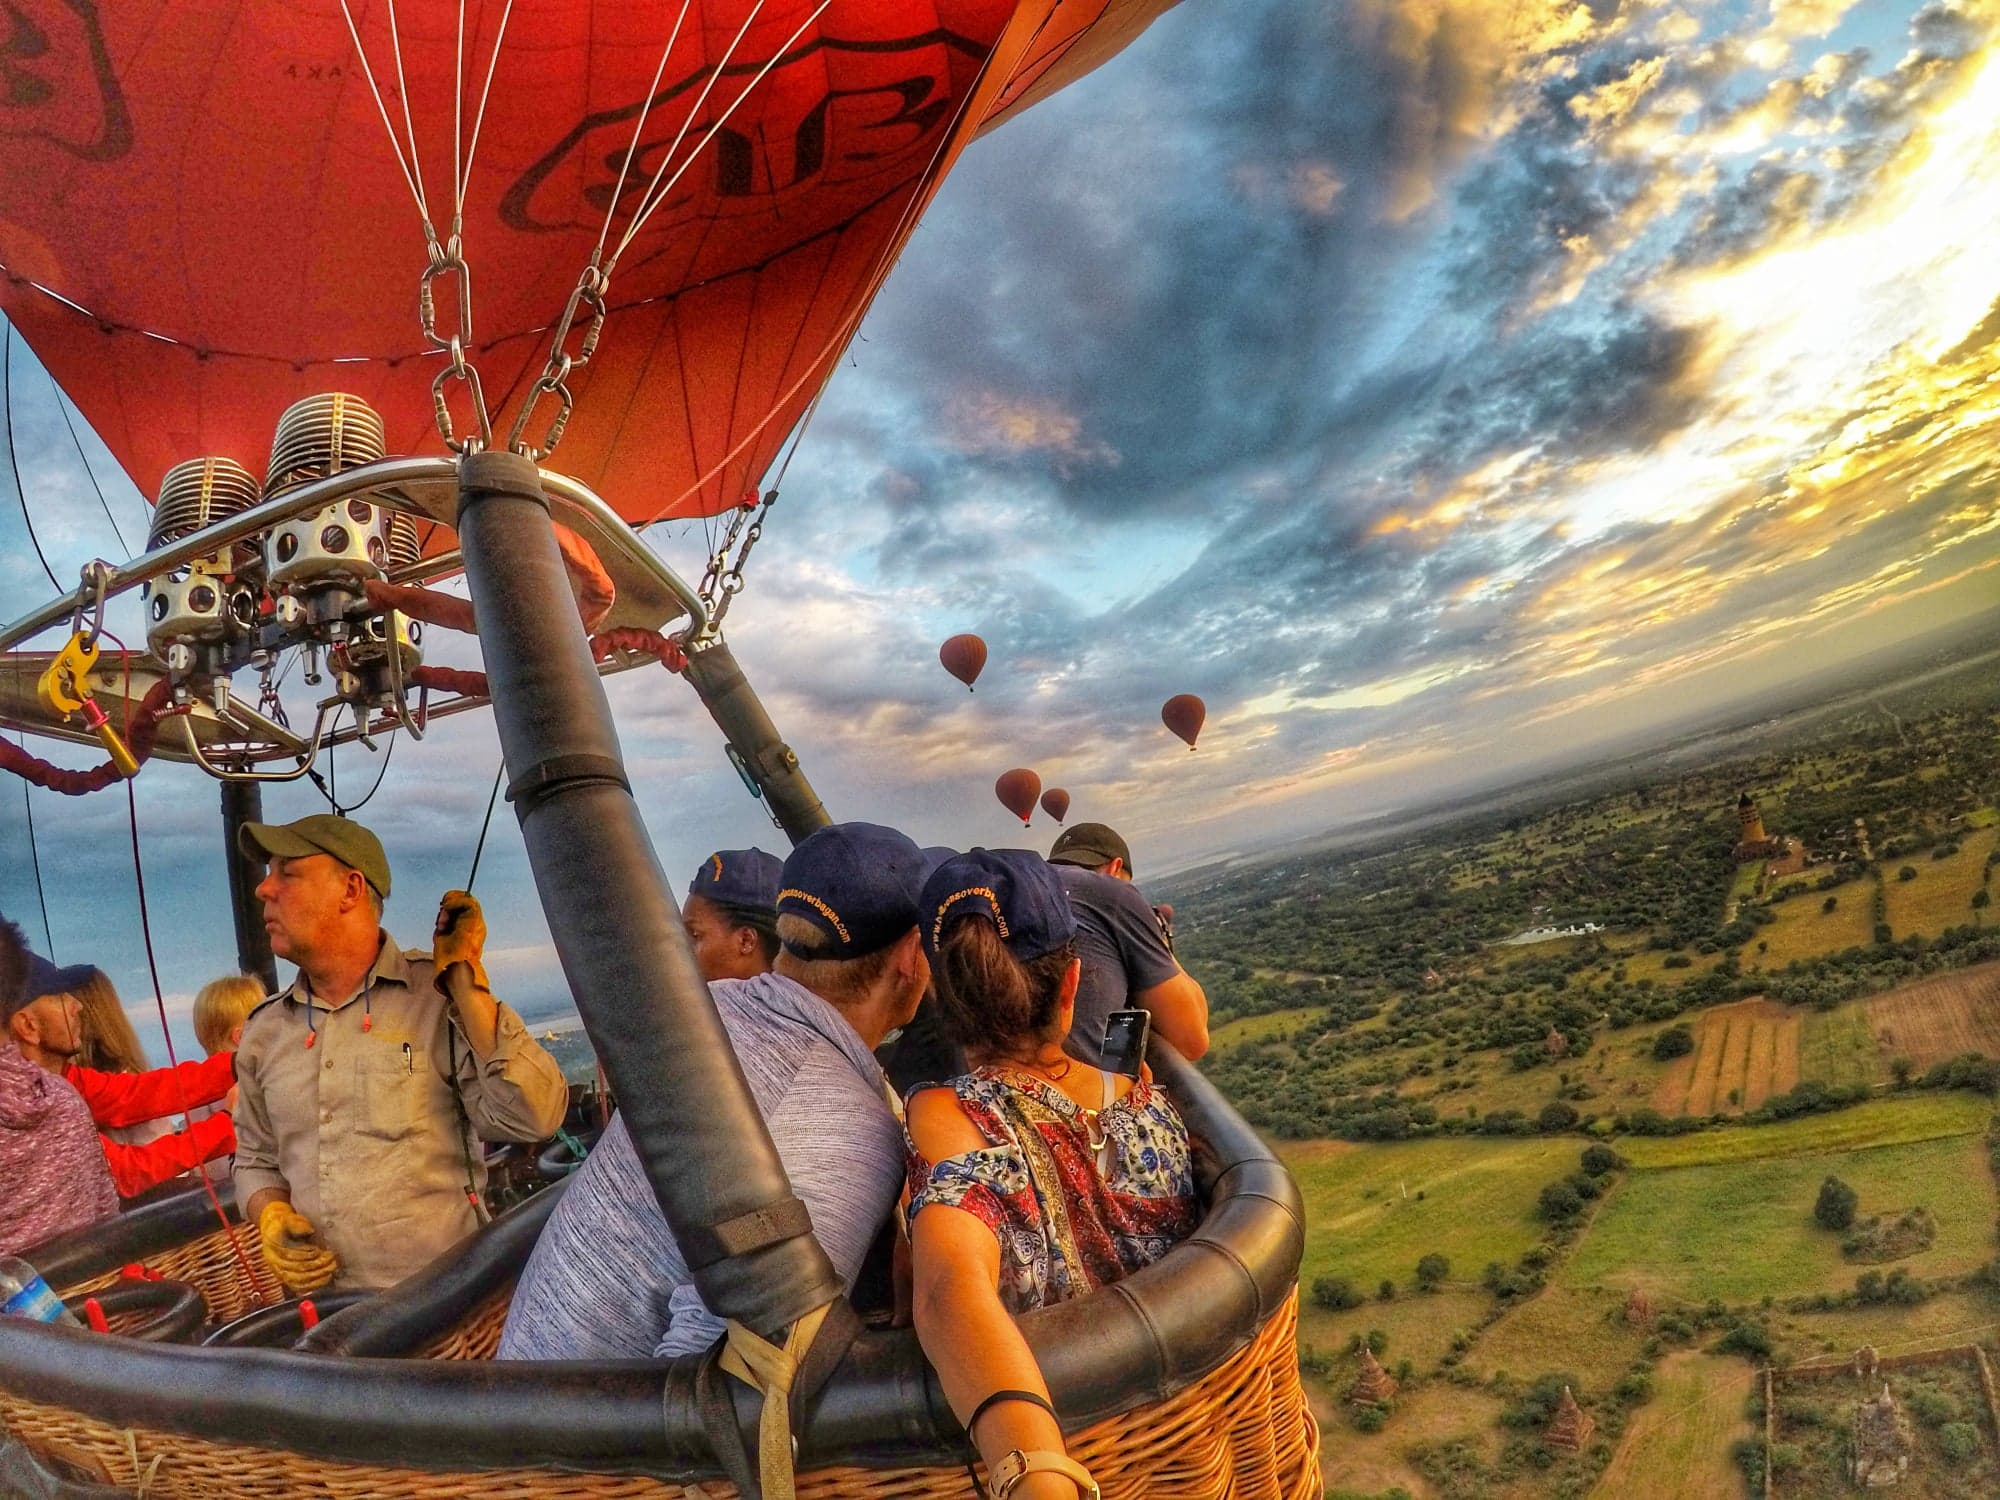 Things To Do In Bagan - Ride Hot Air Balloon